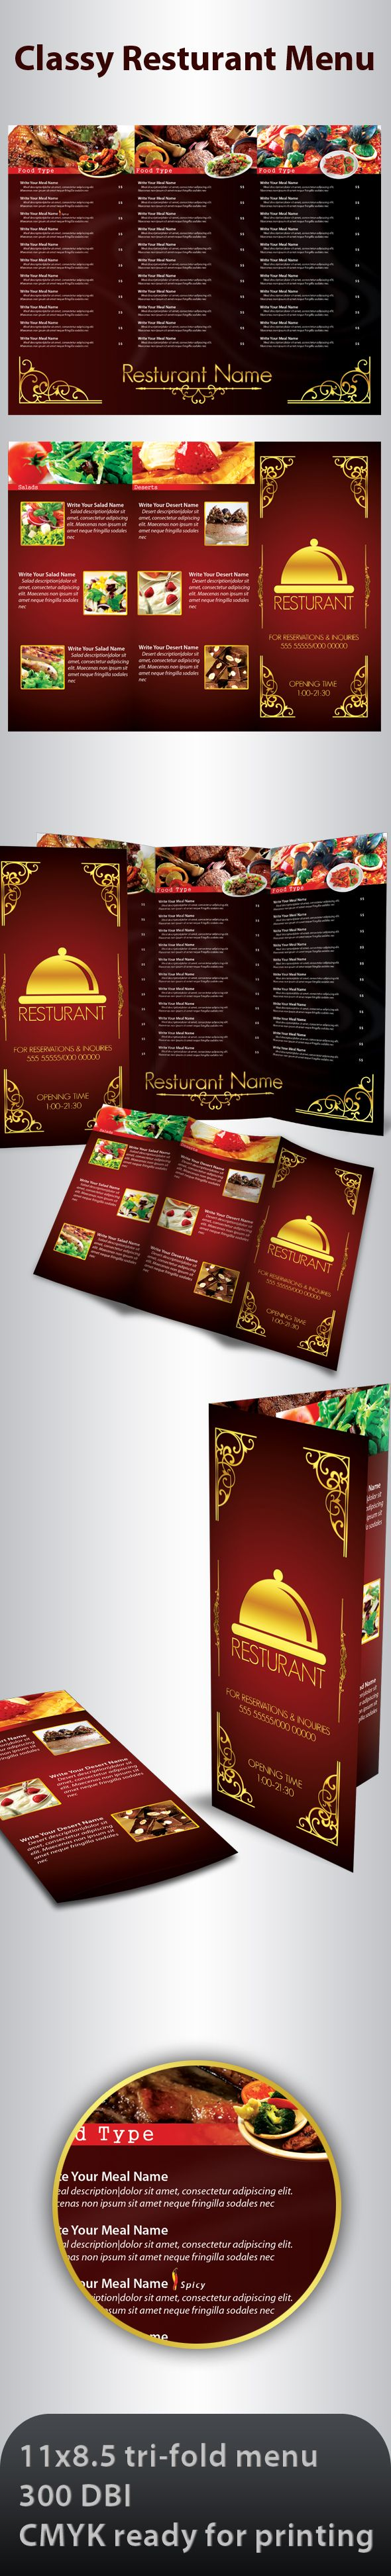 Classy Resturant Menu by ~Advero on deviantART  http://www.techirsh.com